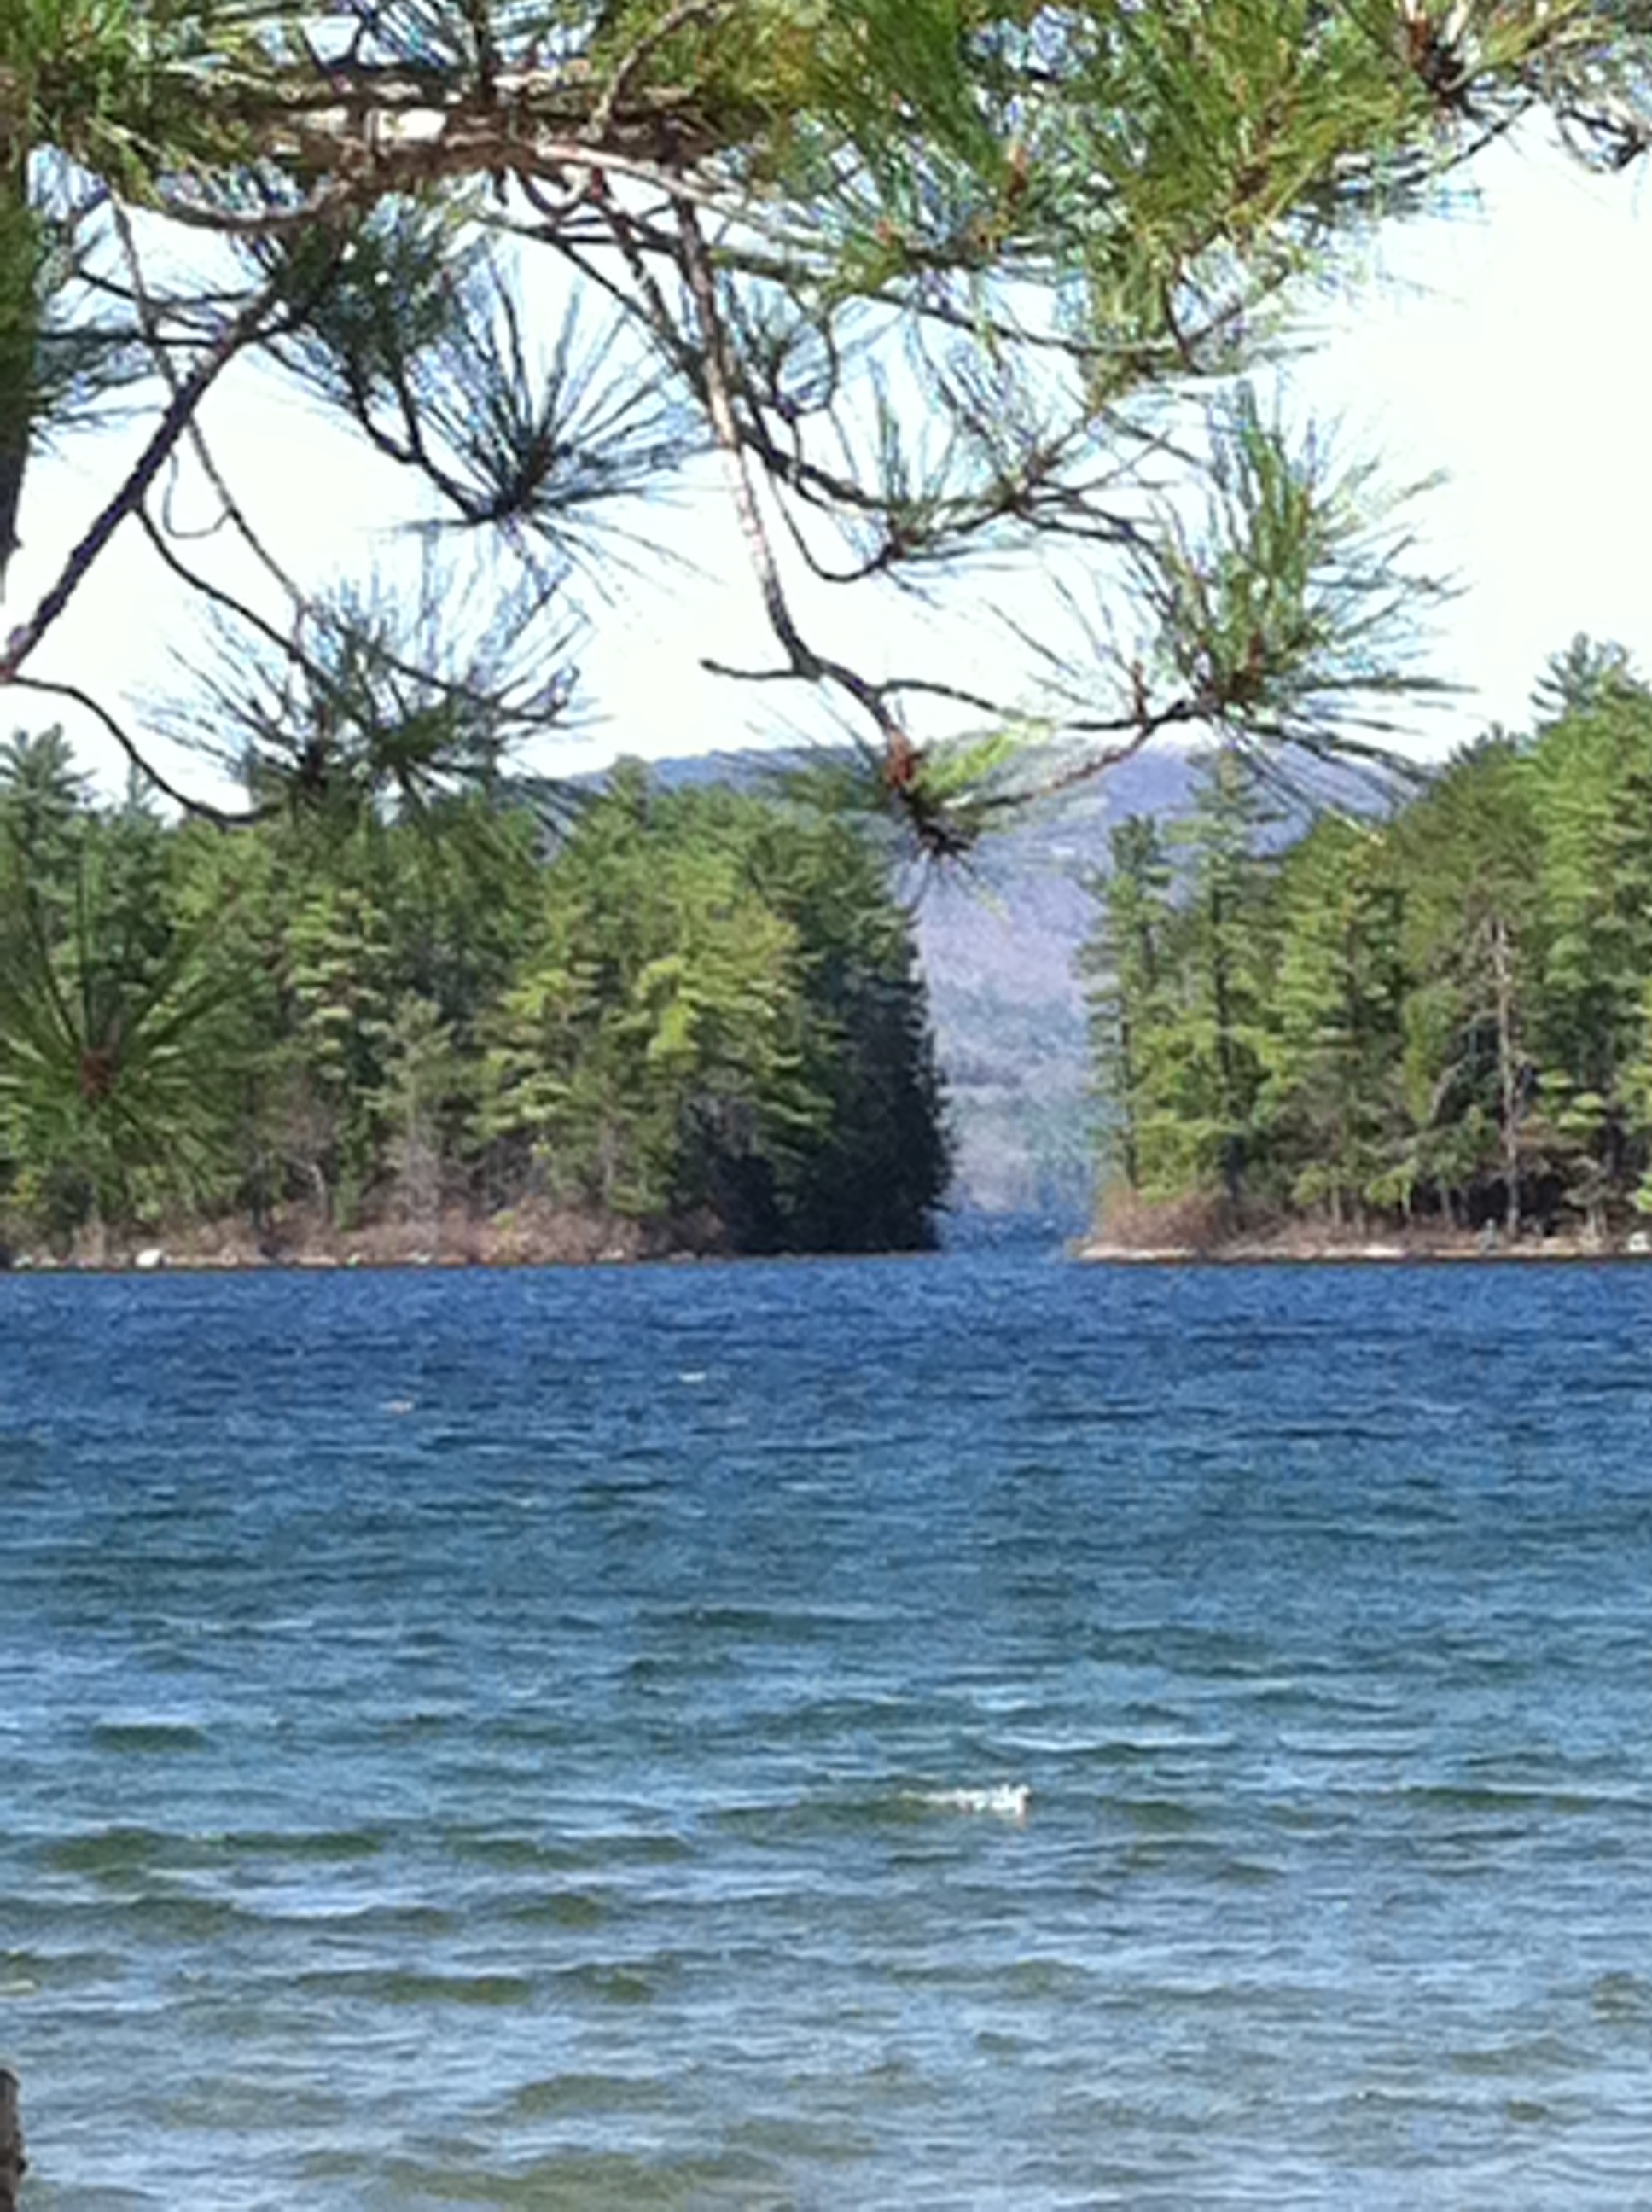 Newfound Lake as seen from Wellington State Park beach area.